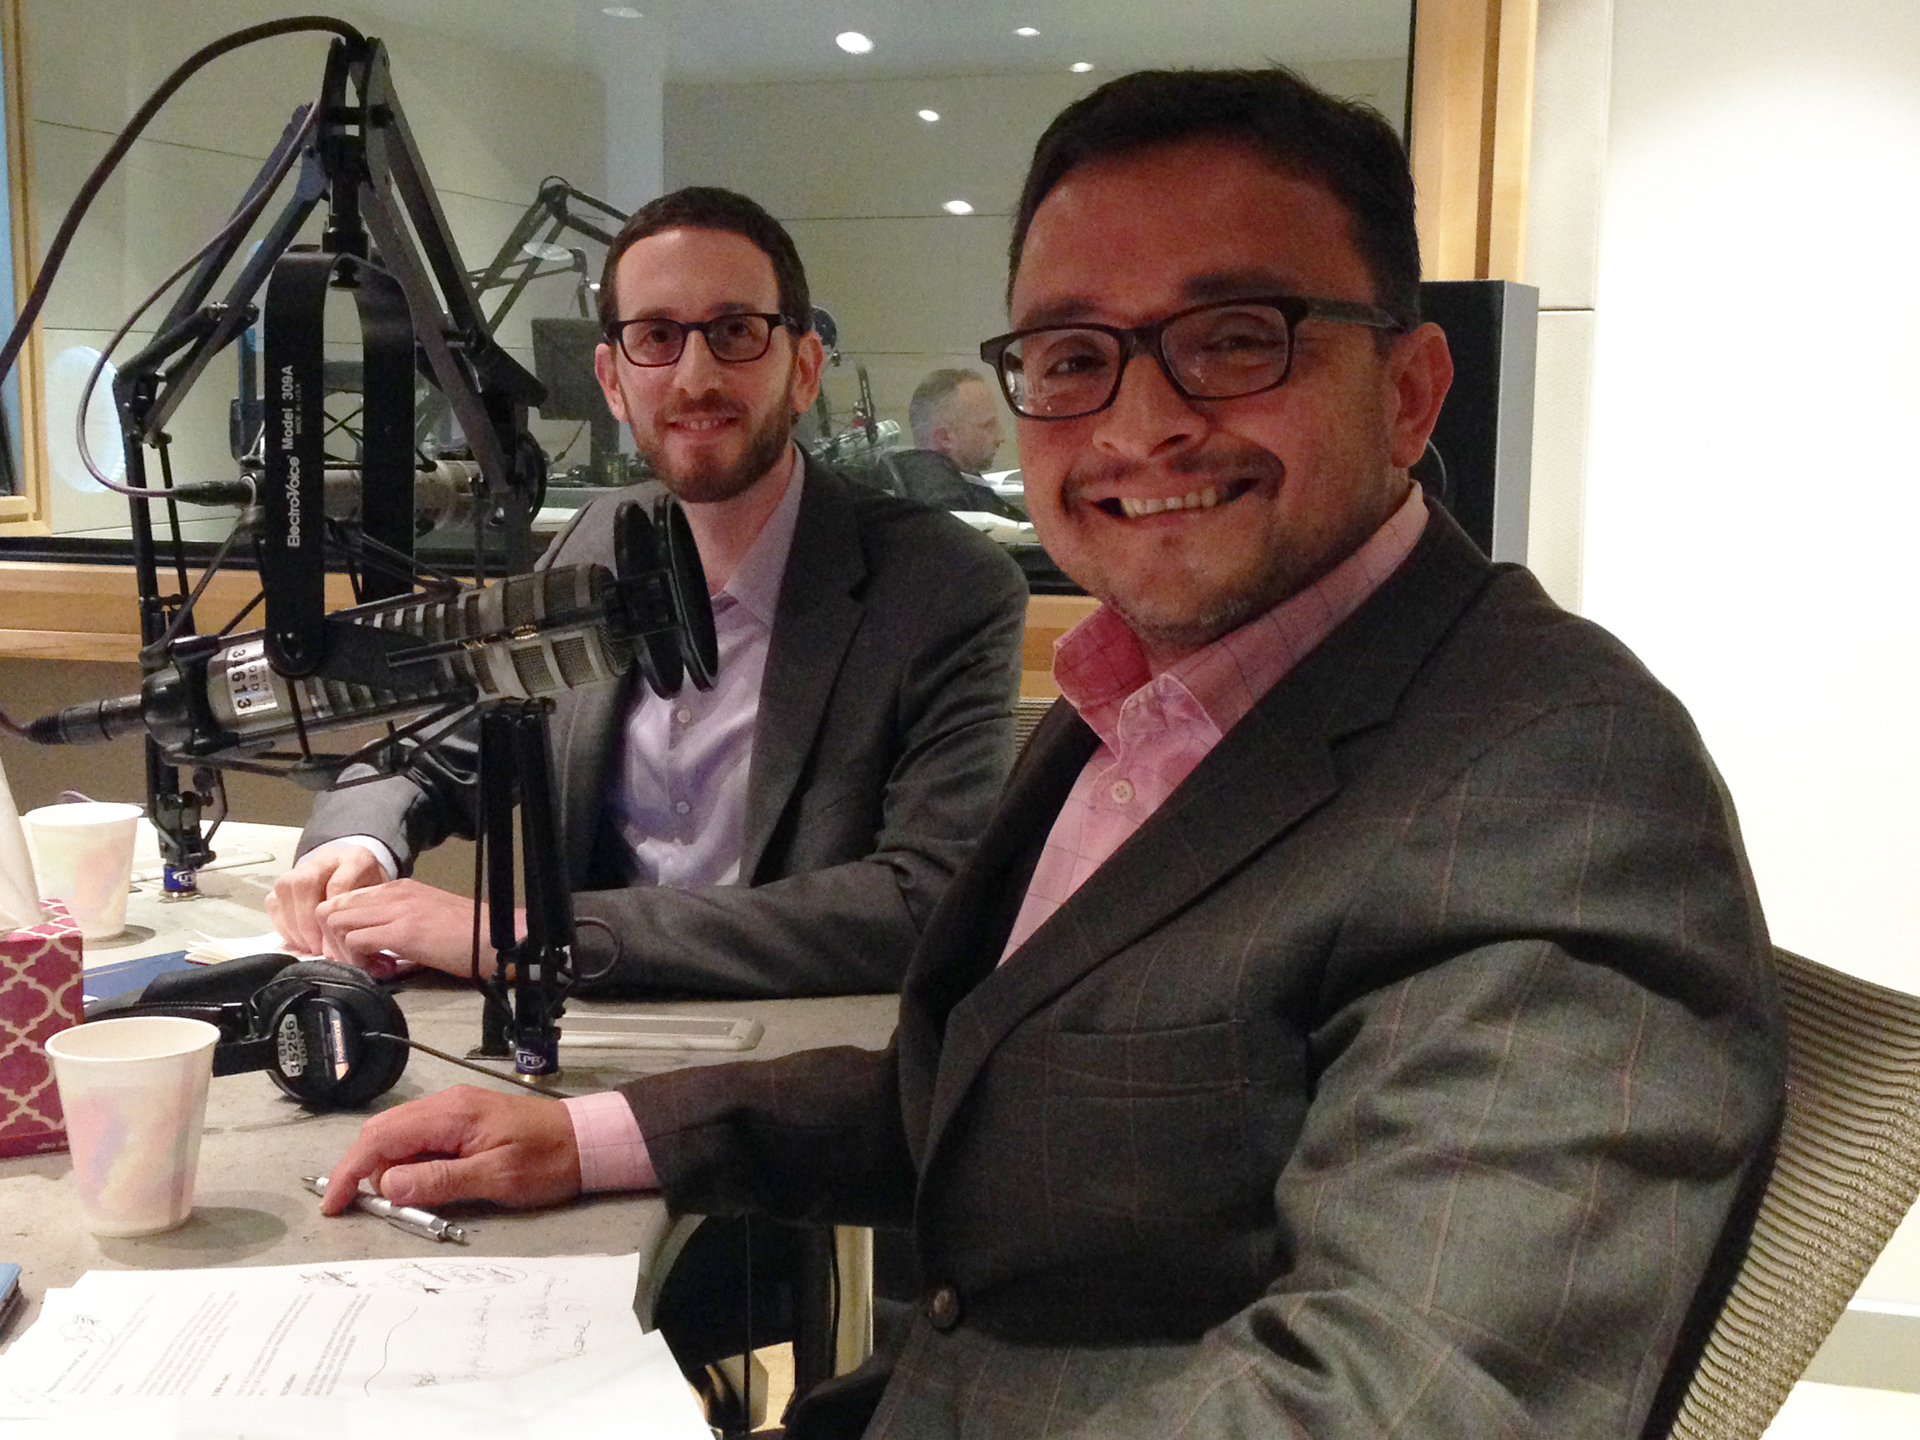 San Francisco Supervisors David Campos and Scott Wiener in the KQED studio